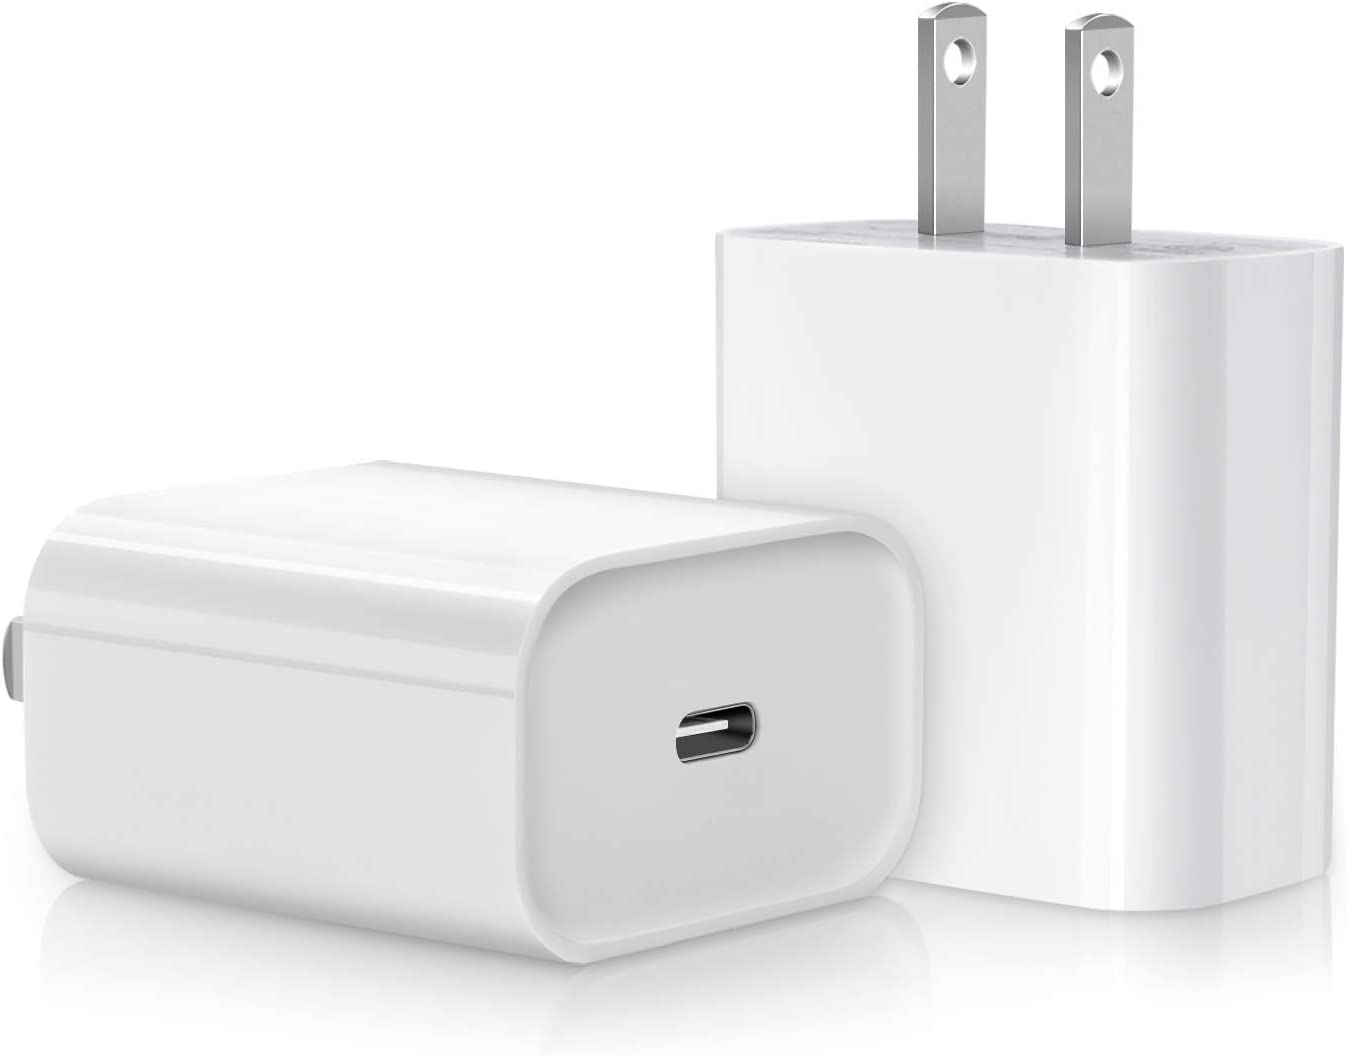 iPhone Fast Charger, 2-Pack 20W USB C Fast Wall Charger for iPhone 12/12 Mini/12 Pro/12 Pro Max/11 pro max, iPad Pro 2020, Google Pixel 4/3